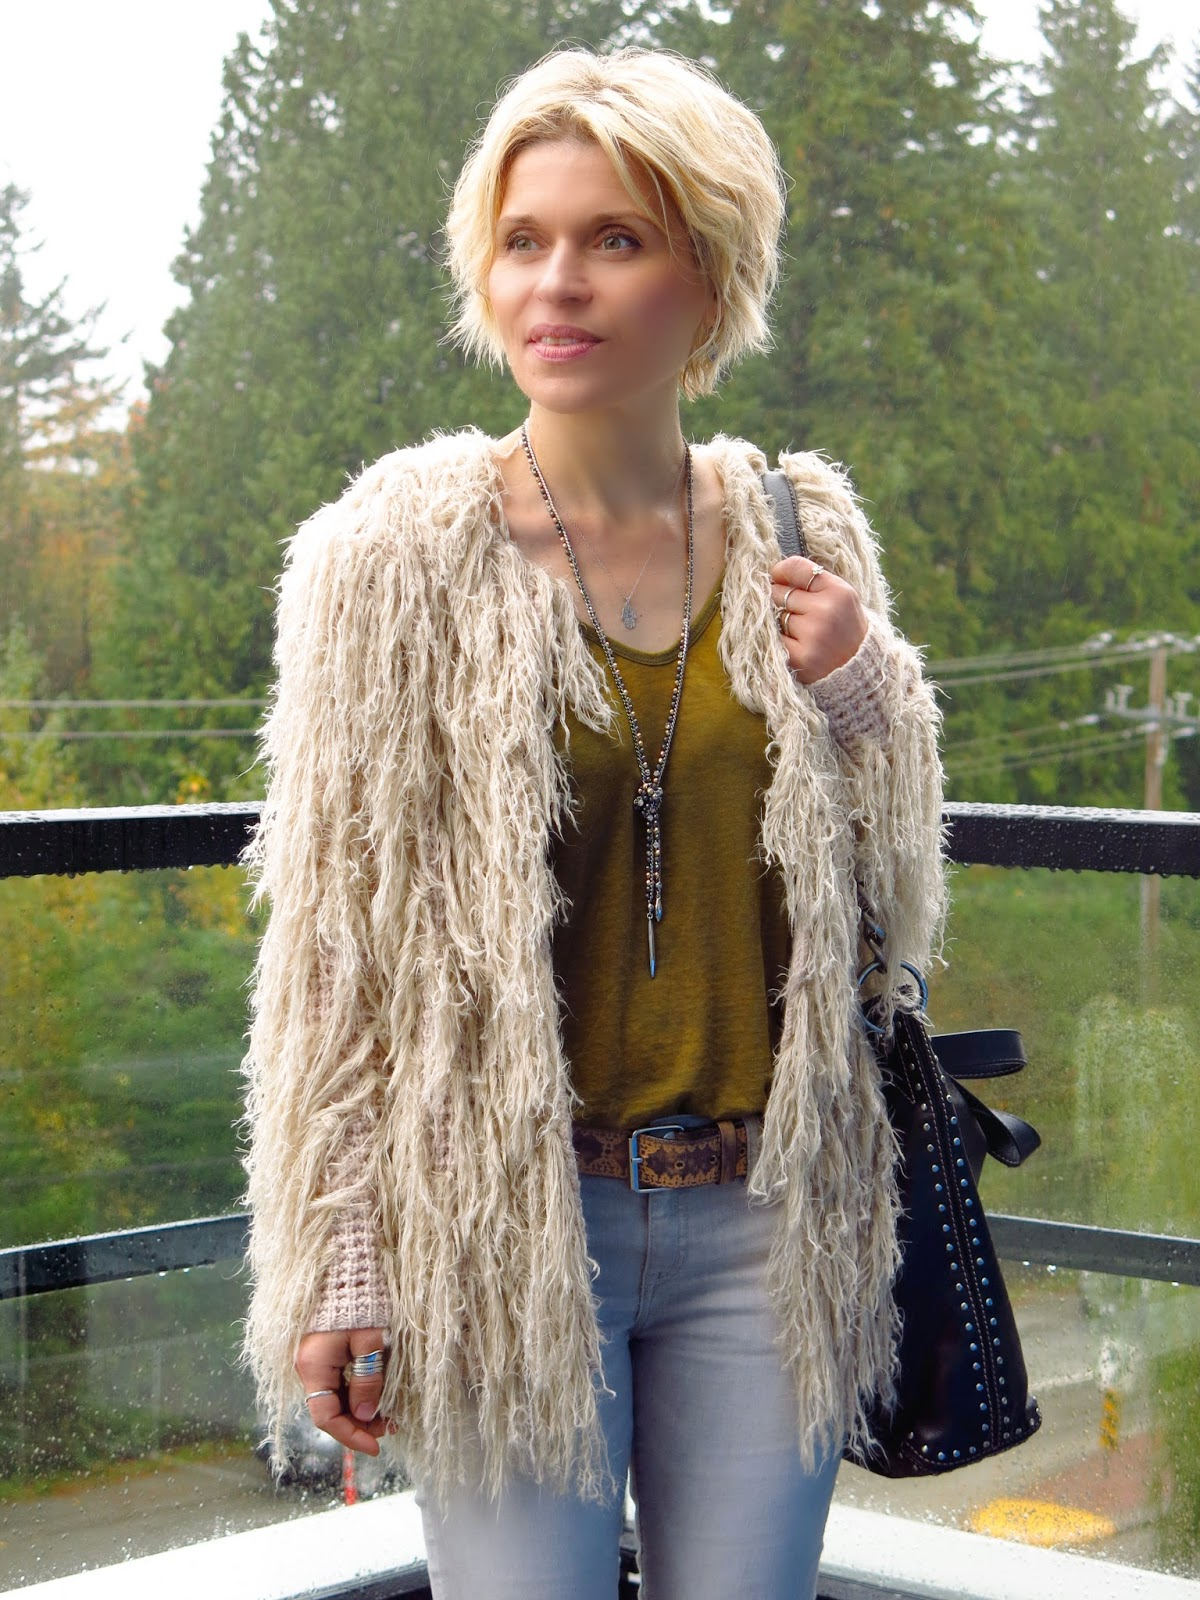 Free People fringy cardigan, Stella & Dot lariat necklace, Michael Kors bag